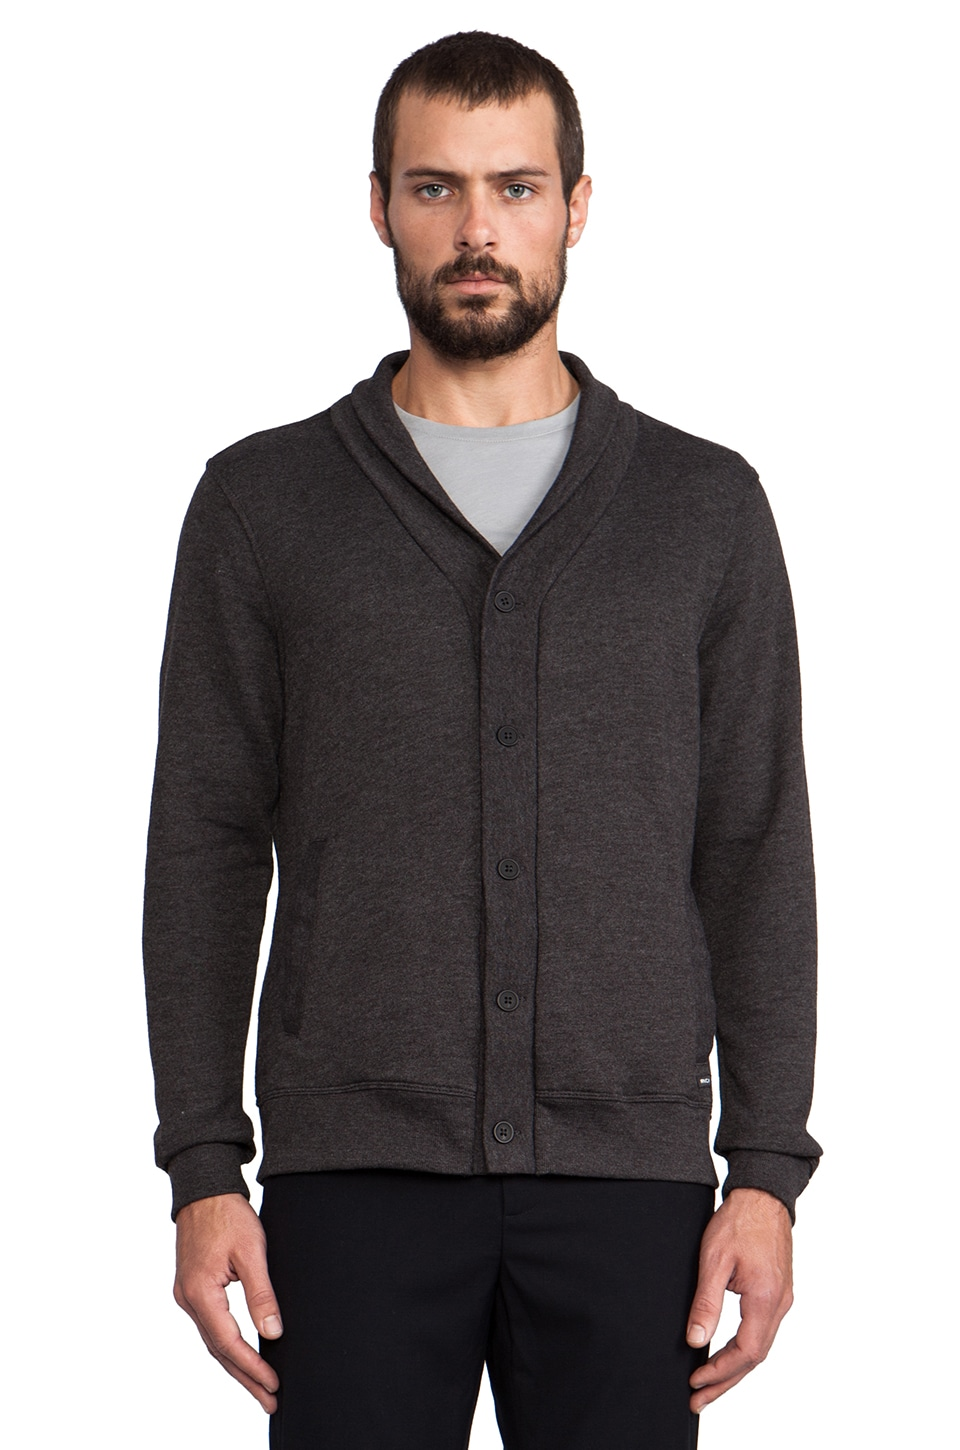 RVCA Tappy Cardigan in Black Heather